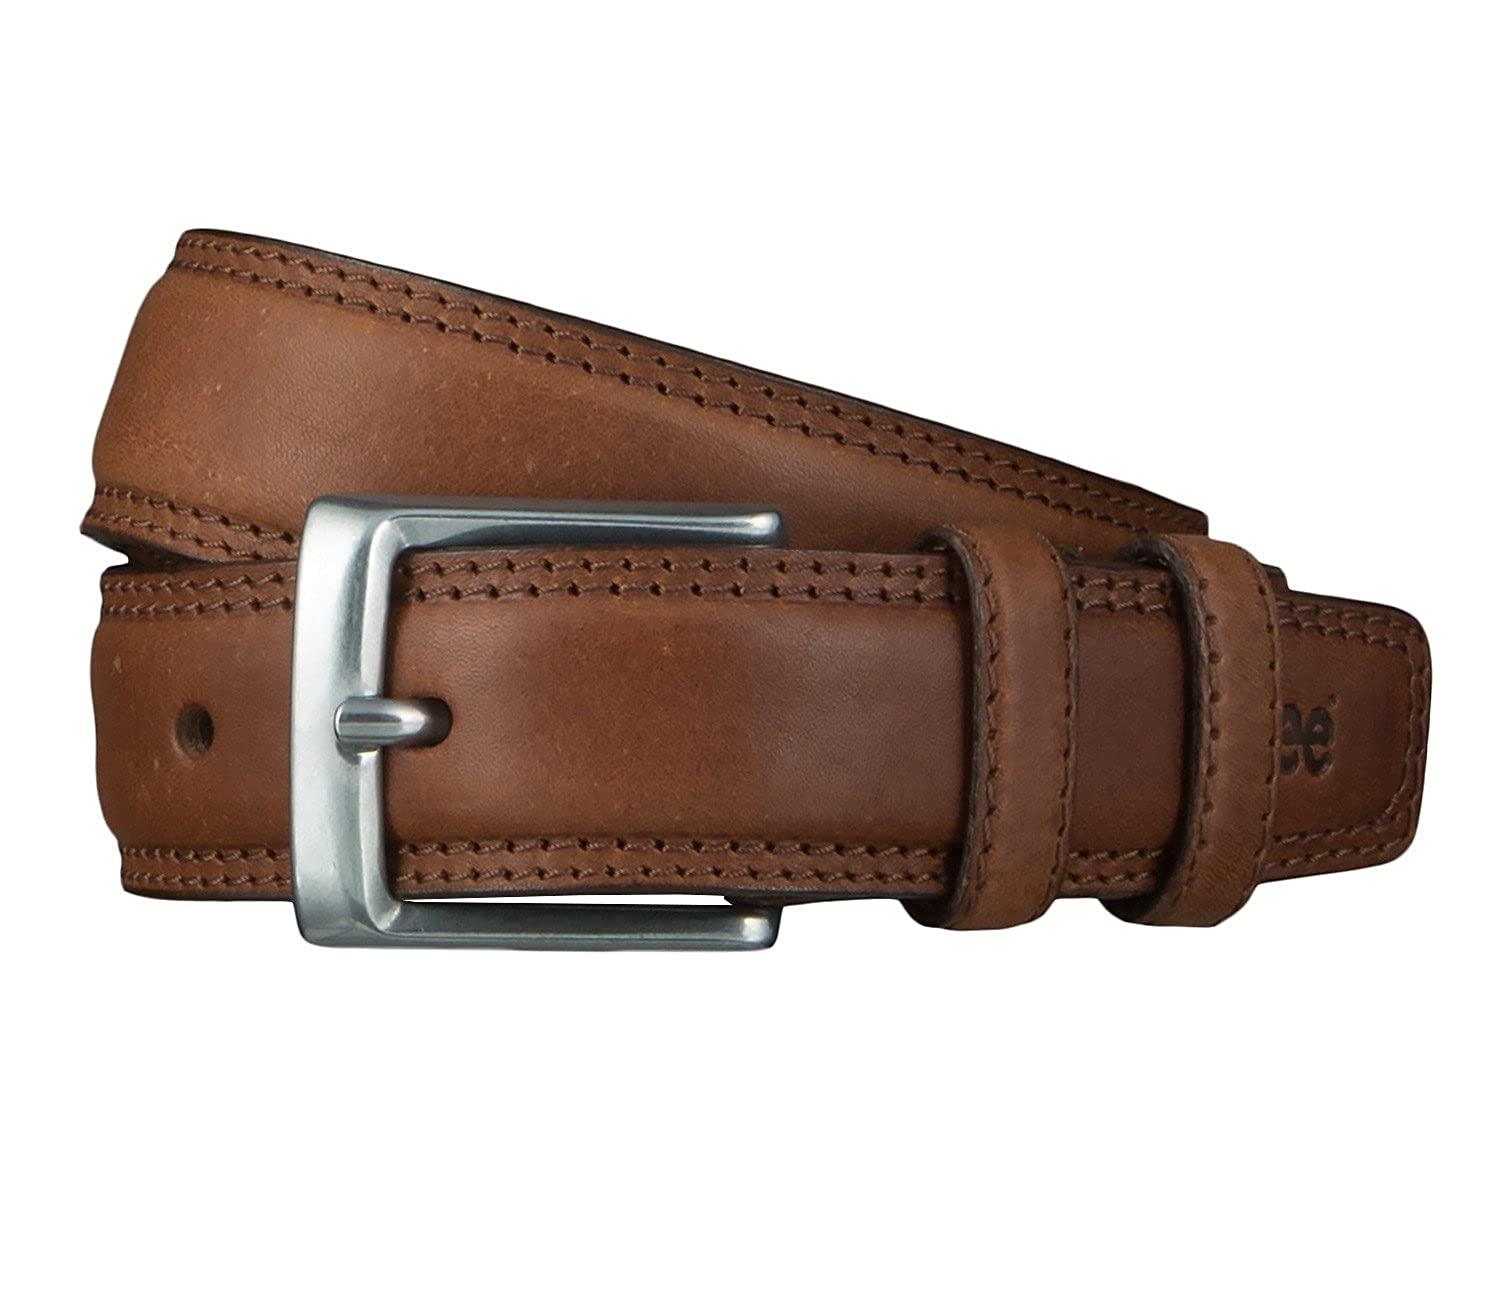 Lee Herren Gürtel Stitched Raised Belt Dark Brown